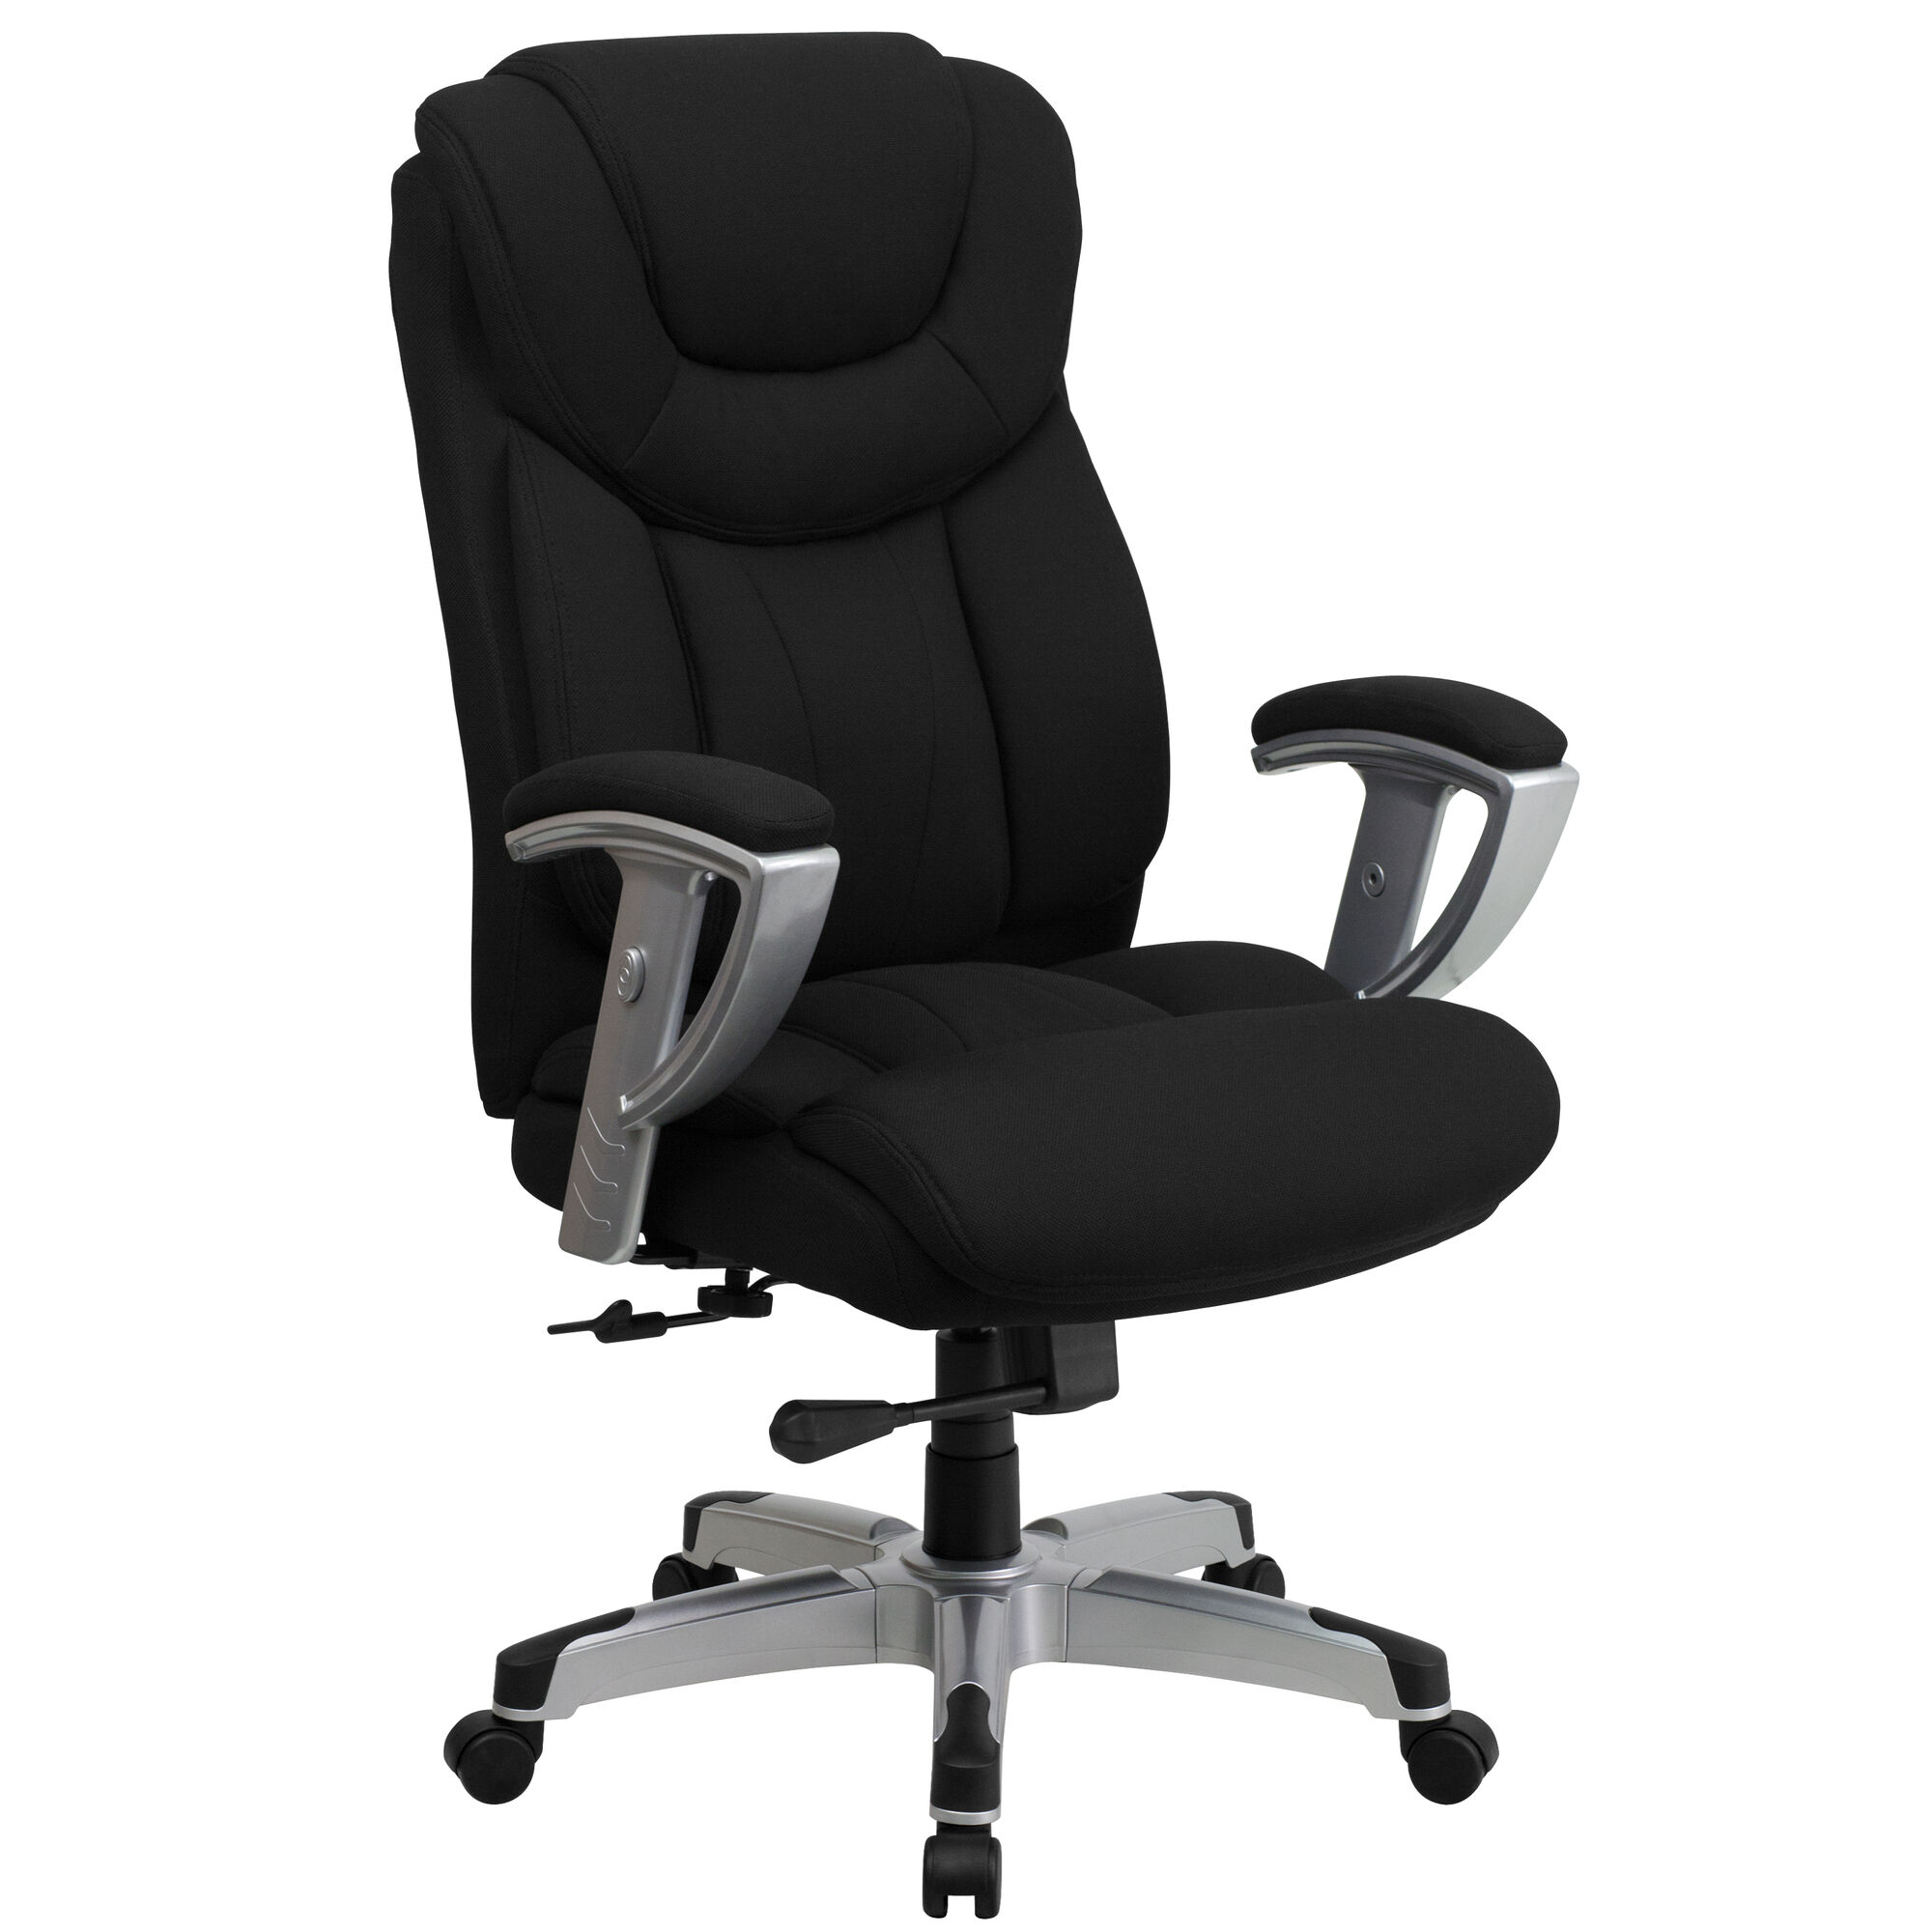 Hercules Series Big Tall 400 Lb Rated Black Fabric Executive Ergonomic Office Chair With Silver Adjustable Arms